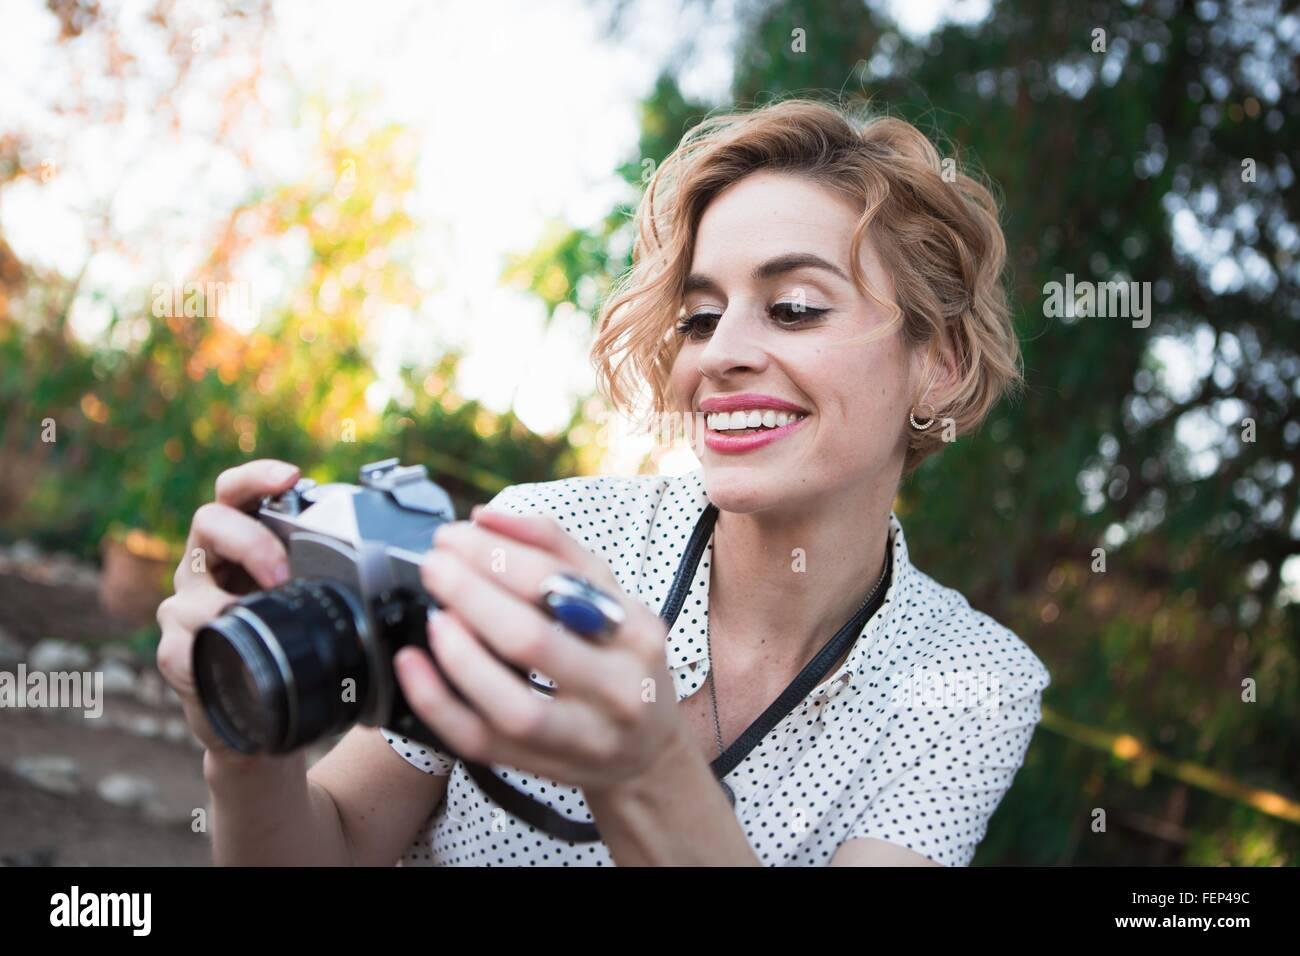 Mid adult woman looking at back of camera, outdoors, smiling - Stock Image